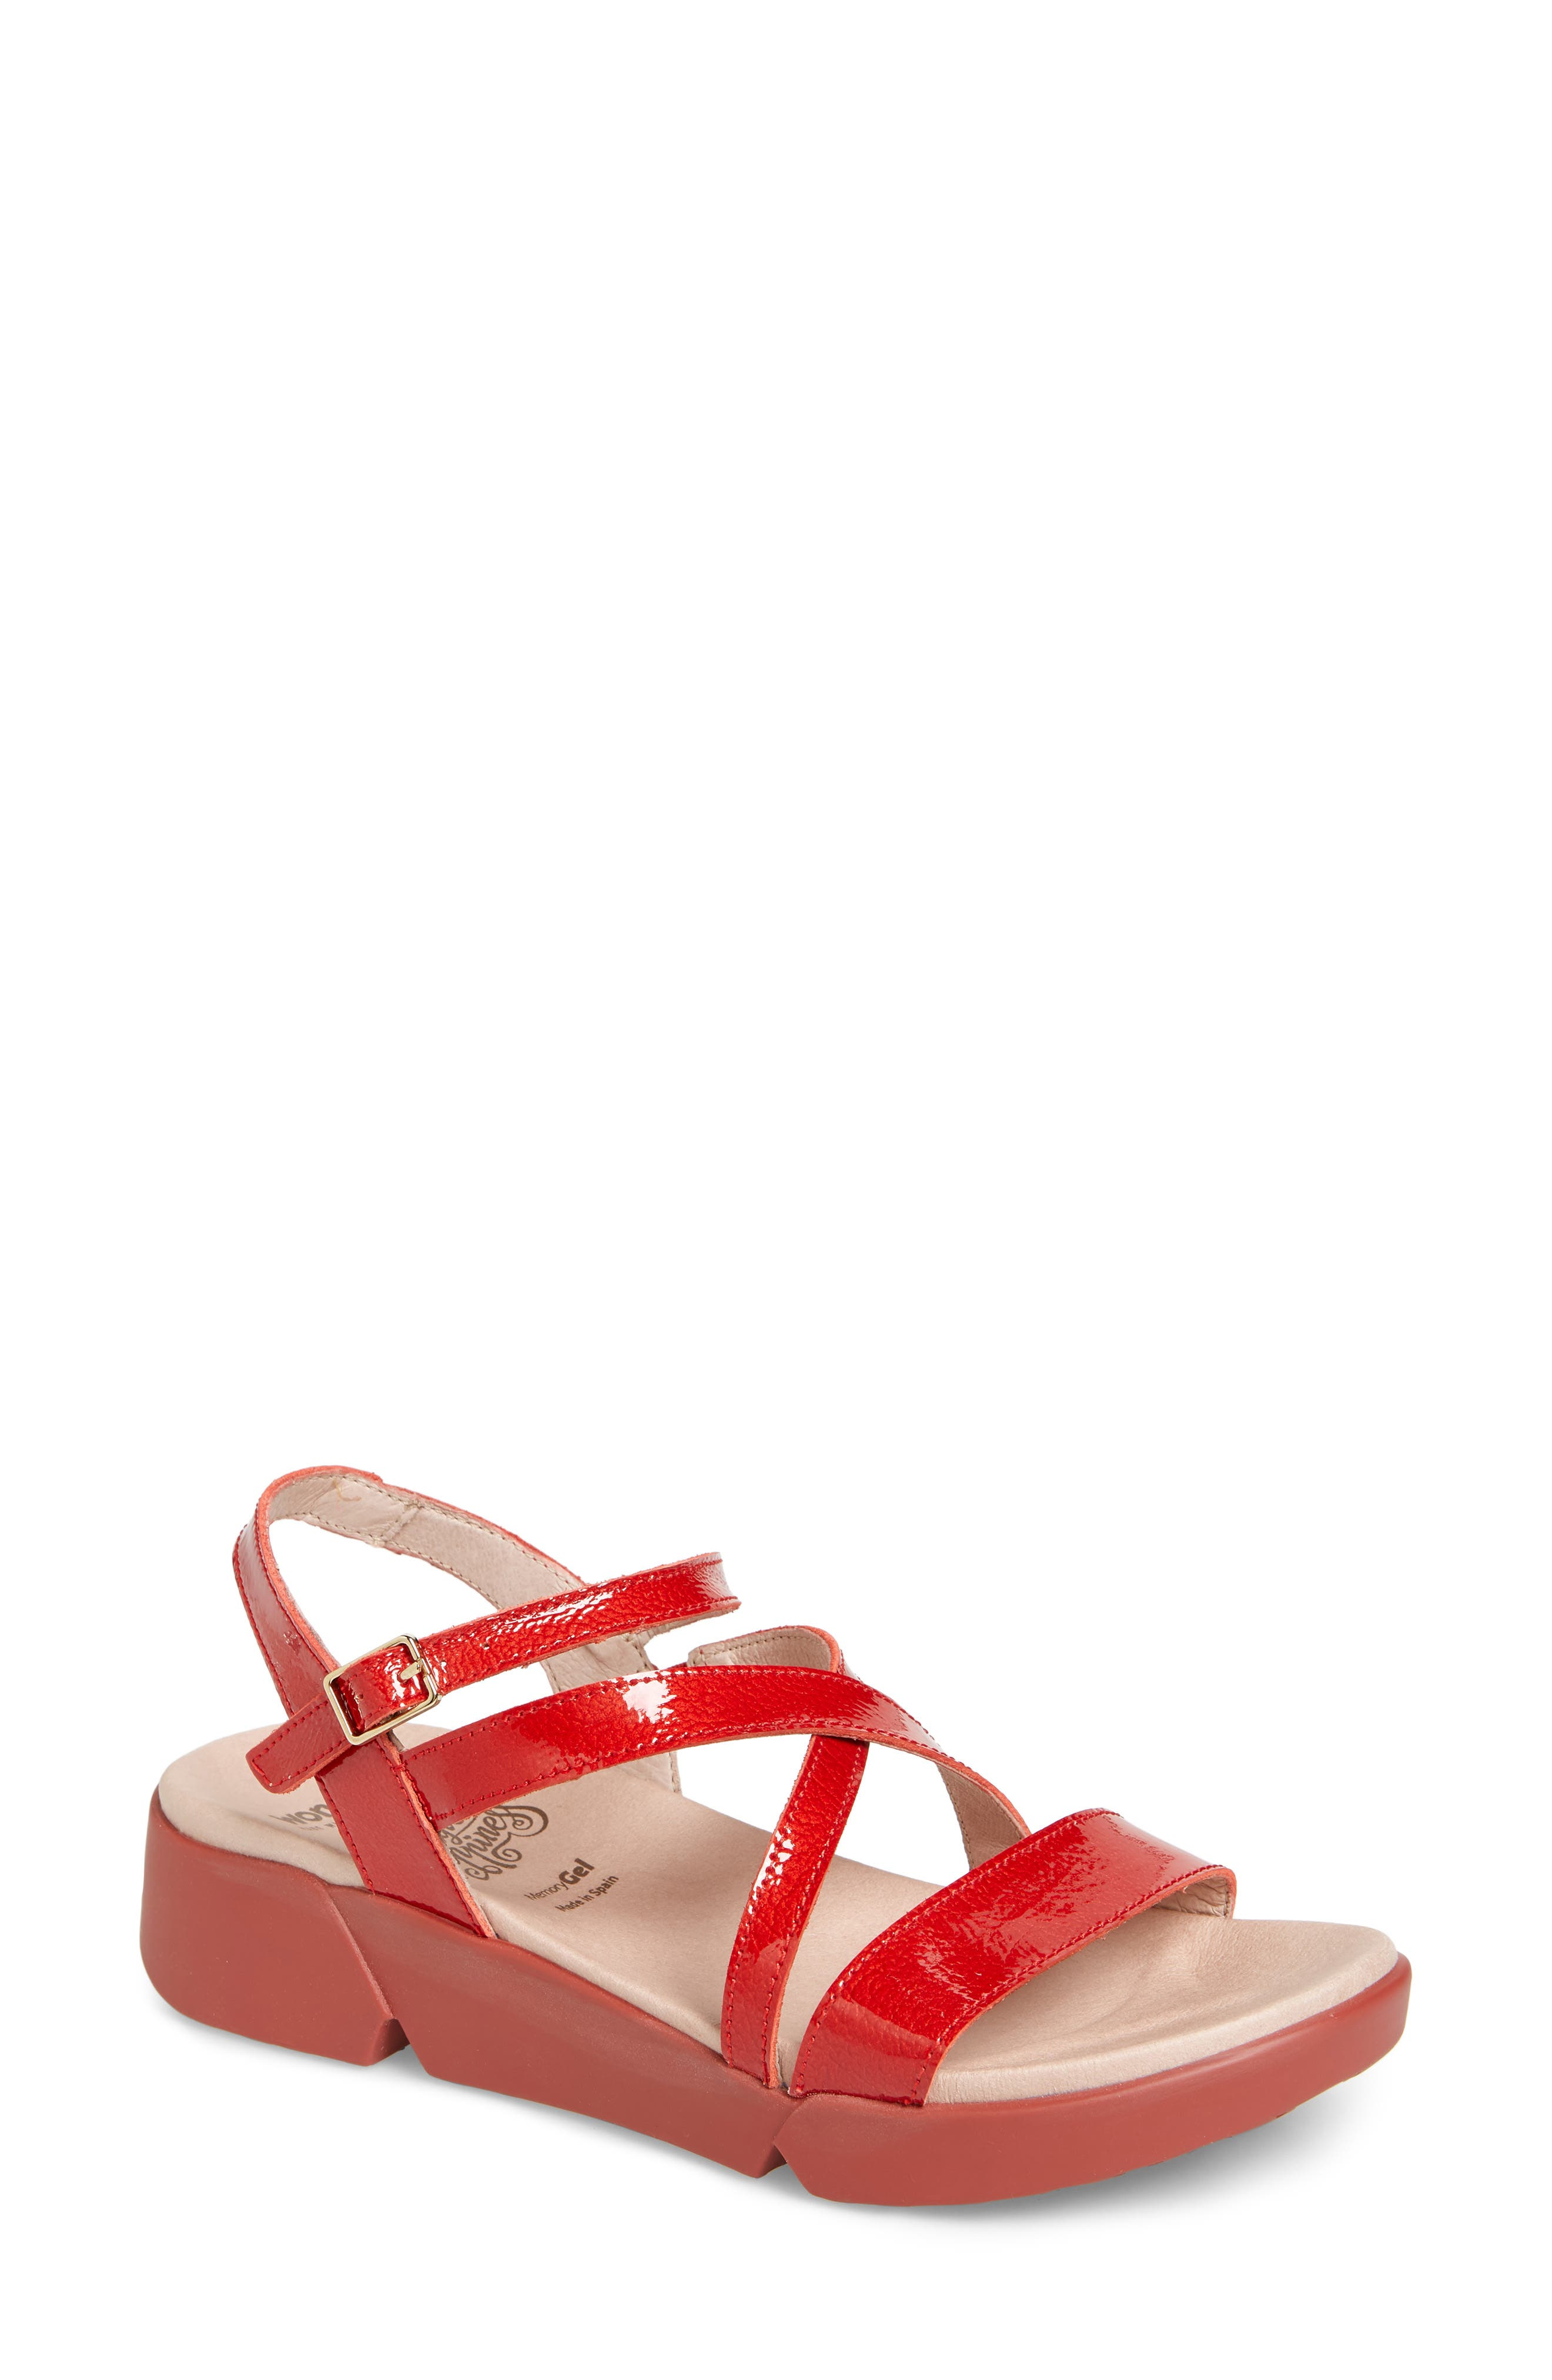 WONDERS Wedge Sandal in Red Patent Leather